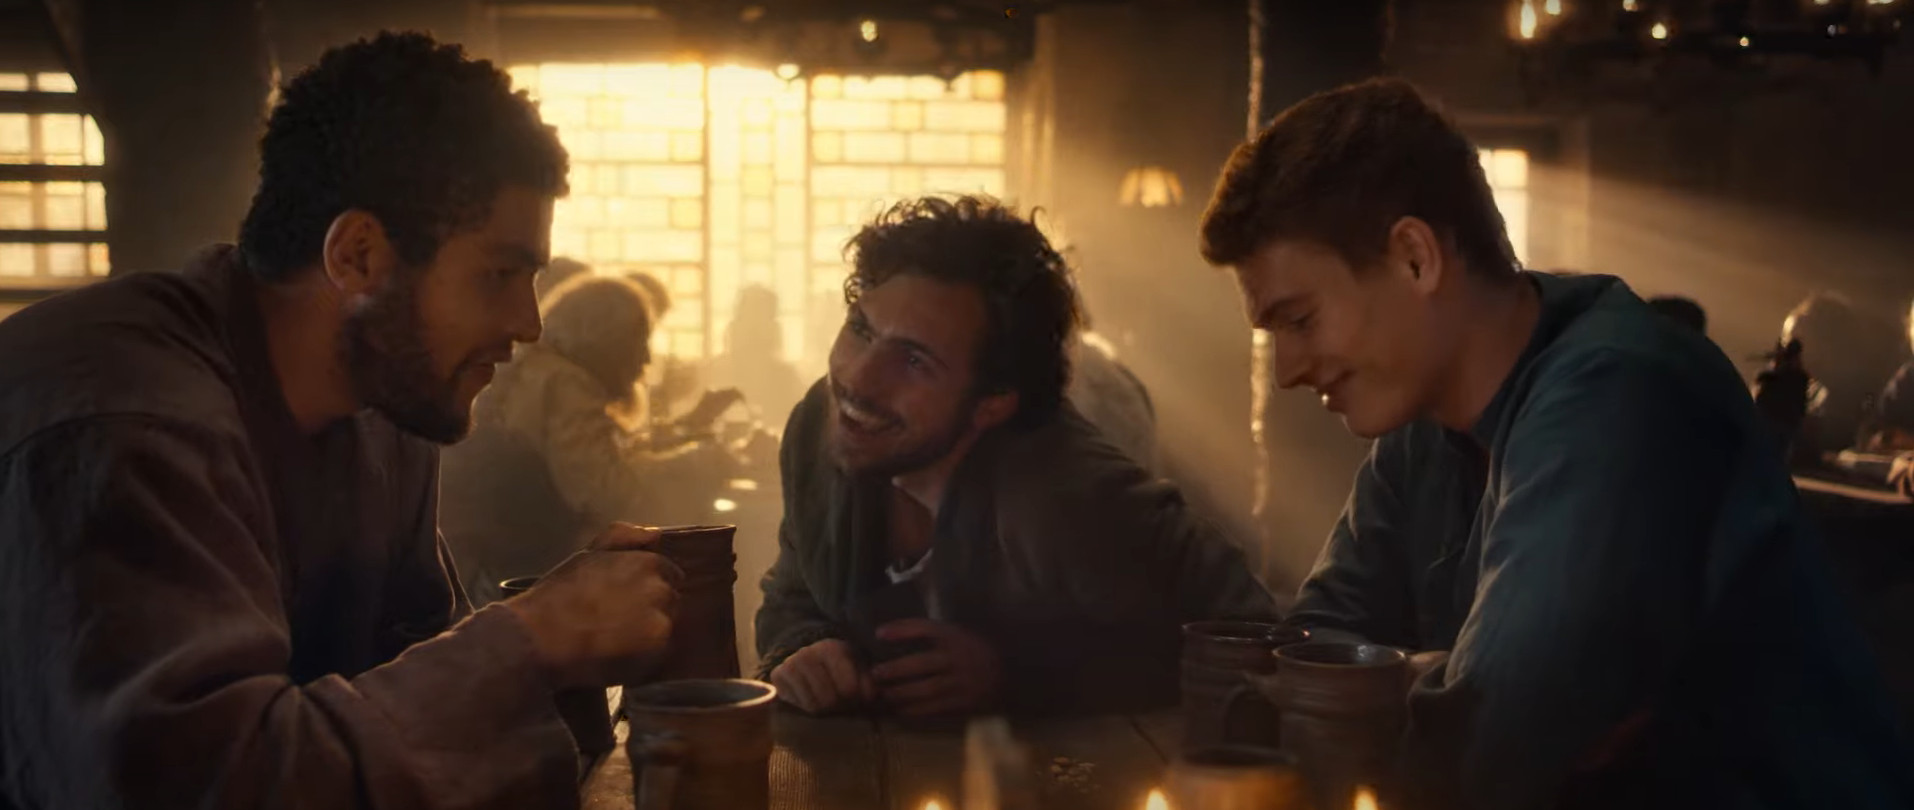 Three men sit at a table with drinks